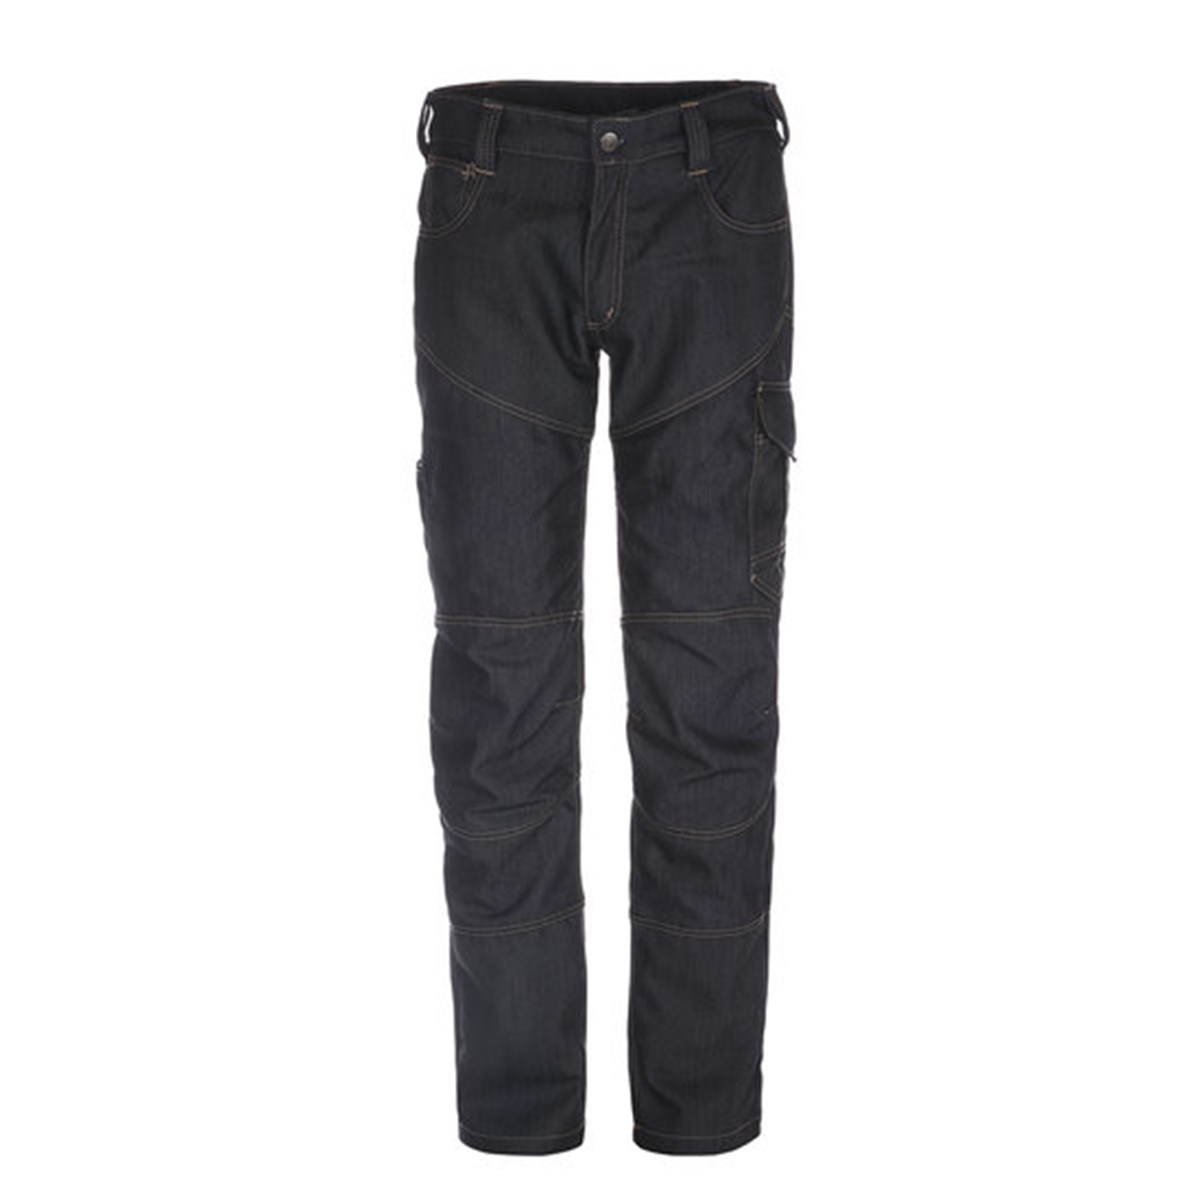 Rovince jeans worker navy 46